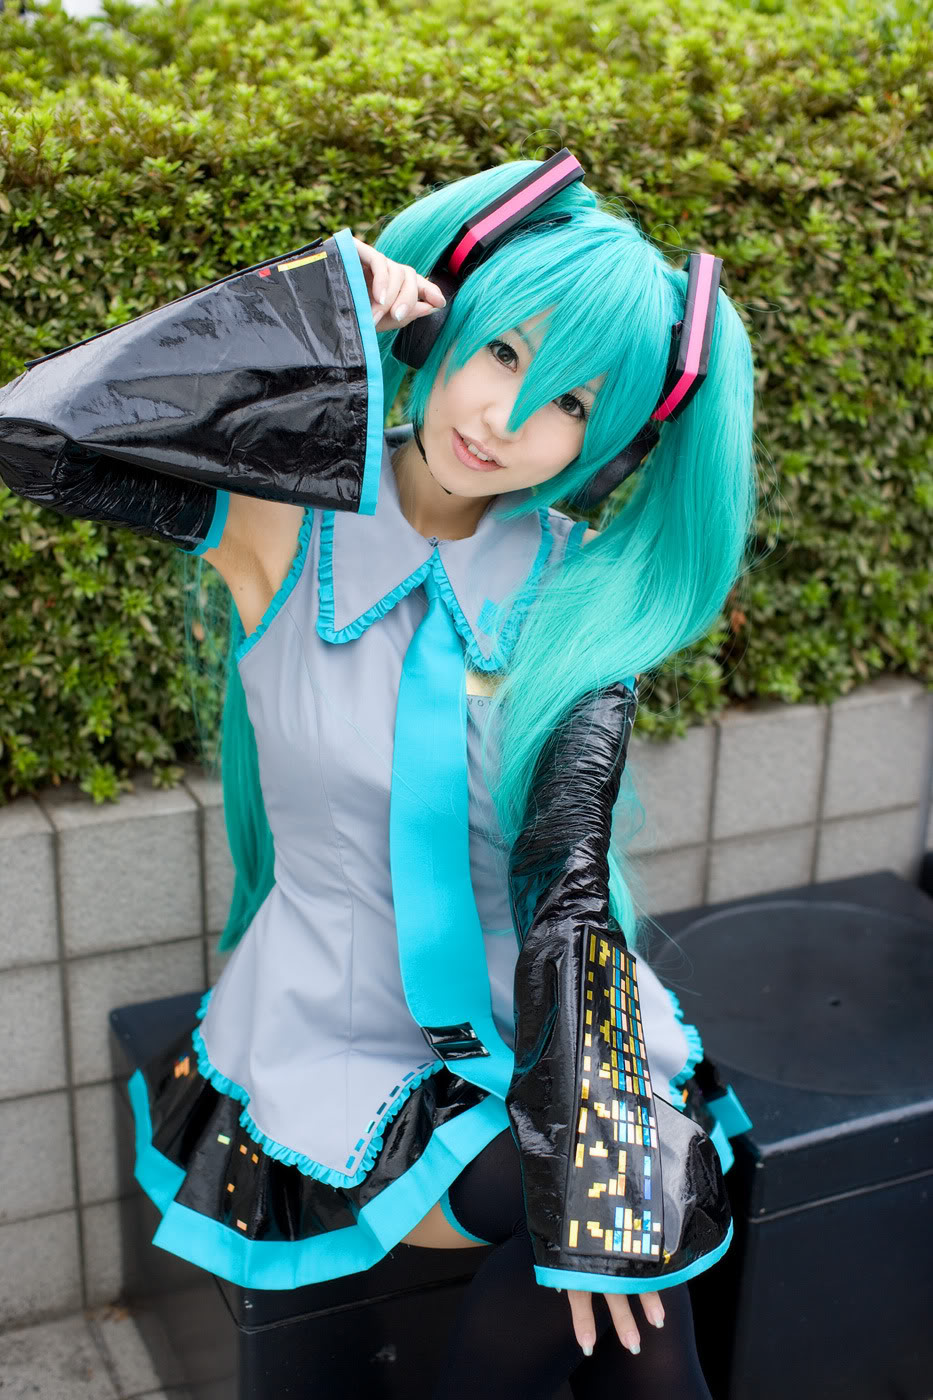 Le cosplay ! Vocaloid+Cosplay+-+hatsune_miku+11